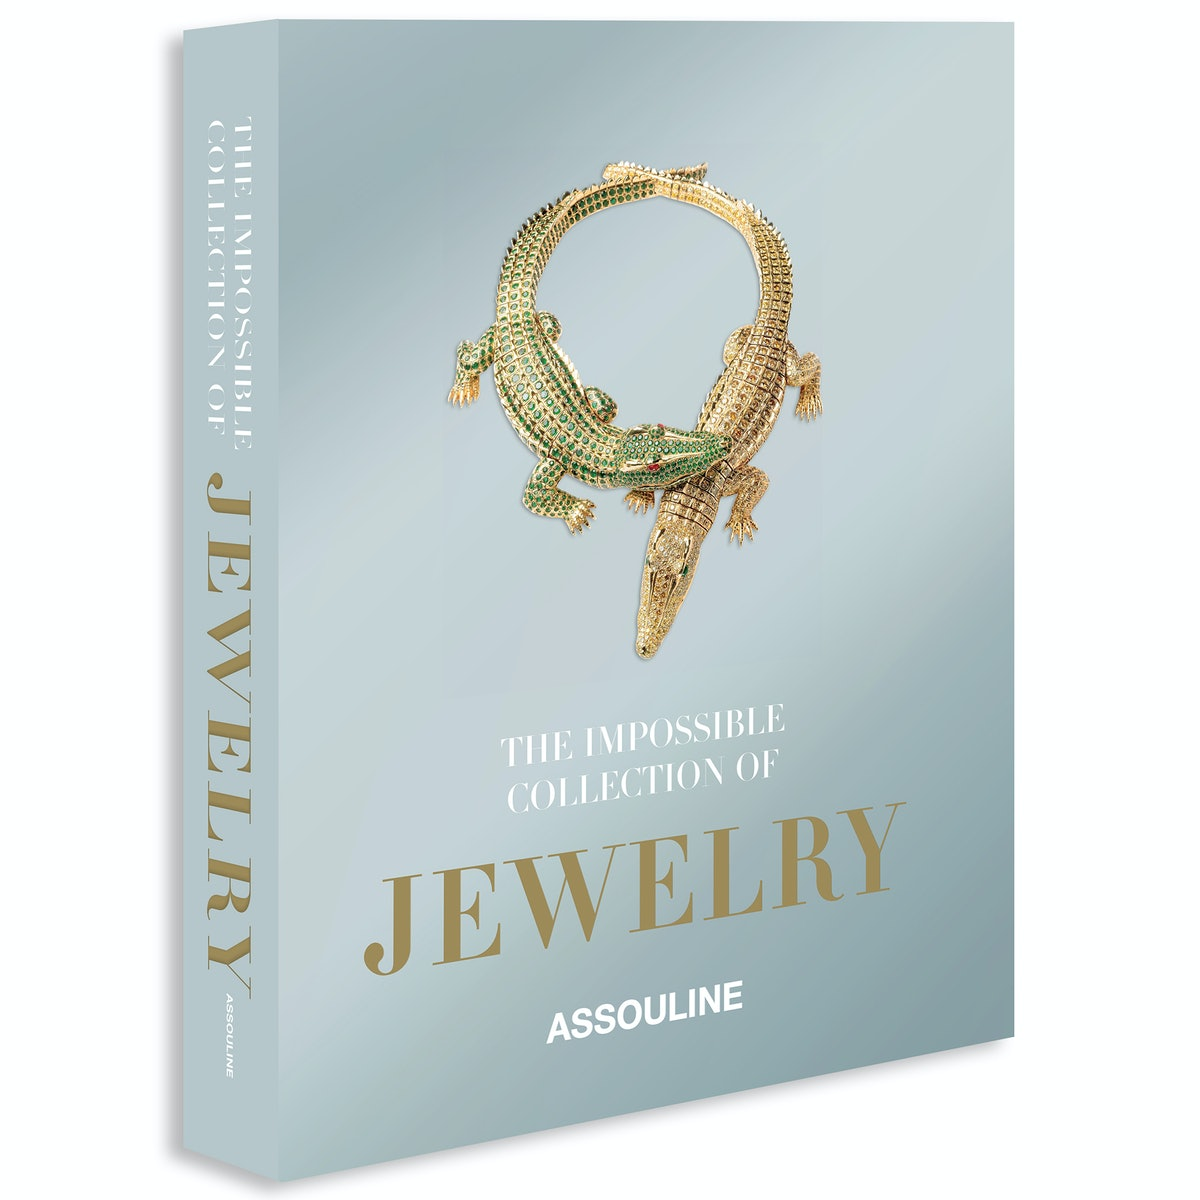 The Impossible Collection of Jewelry, by Vivienne Becker